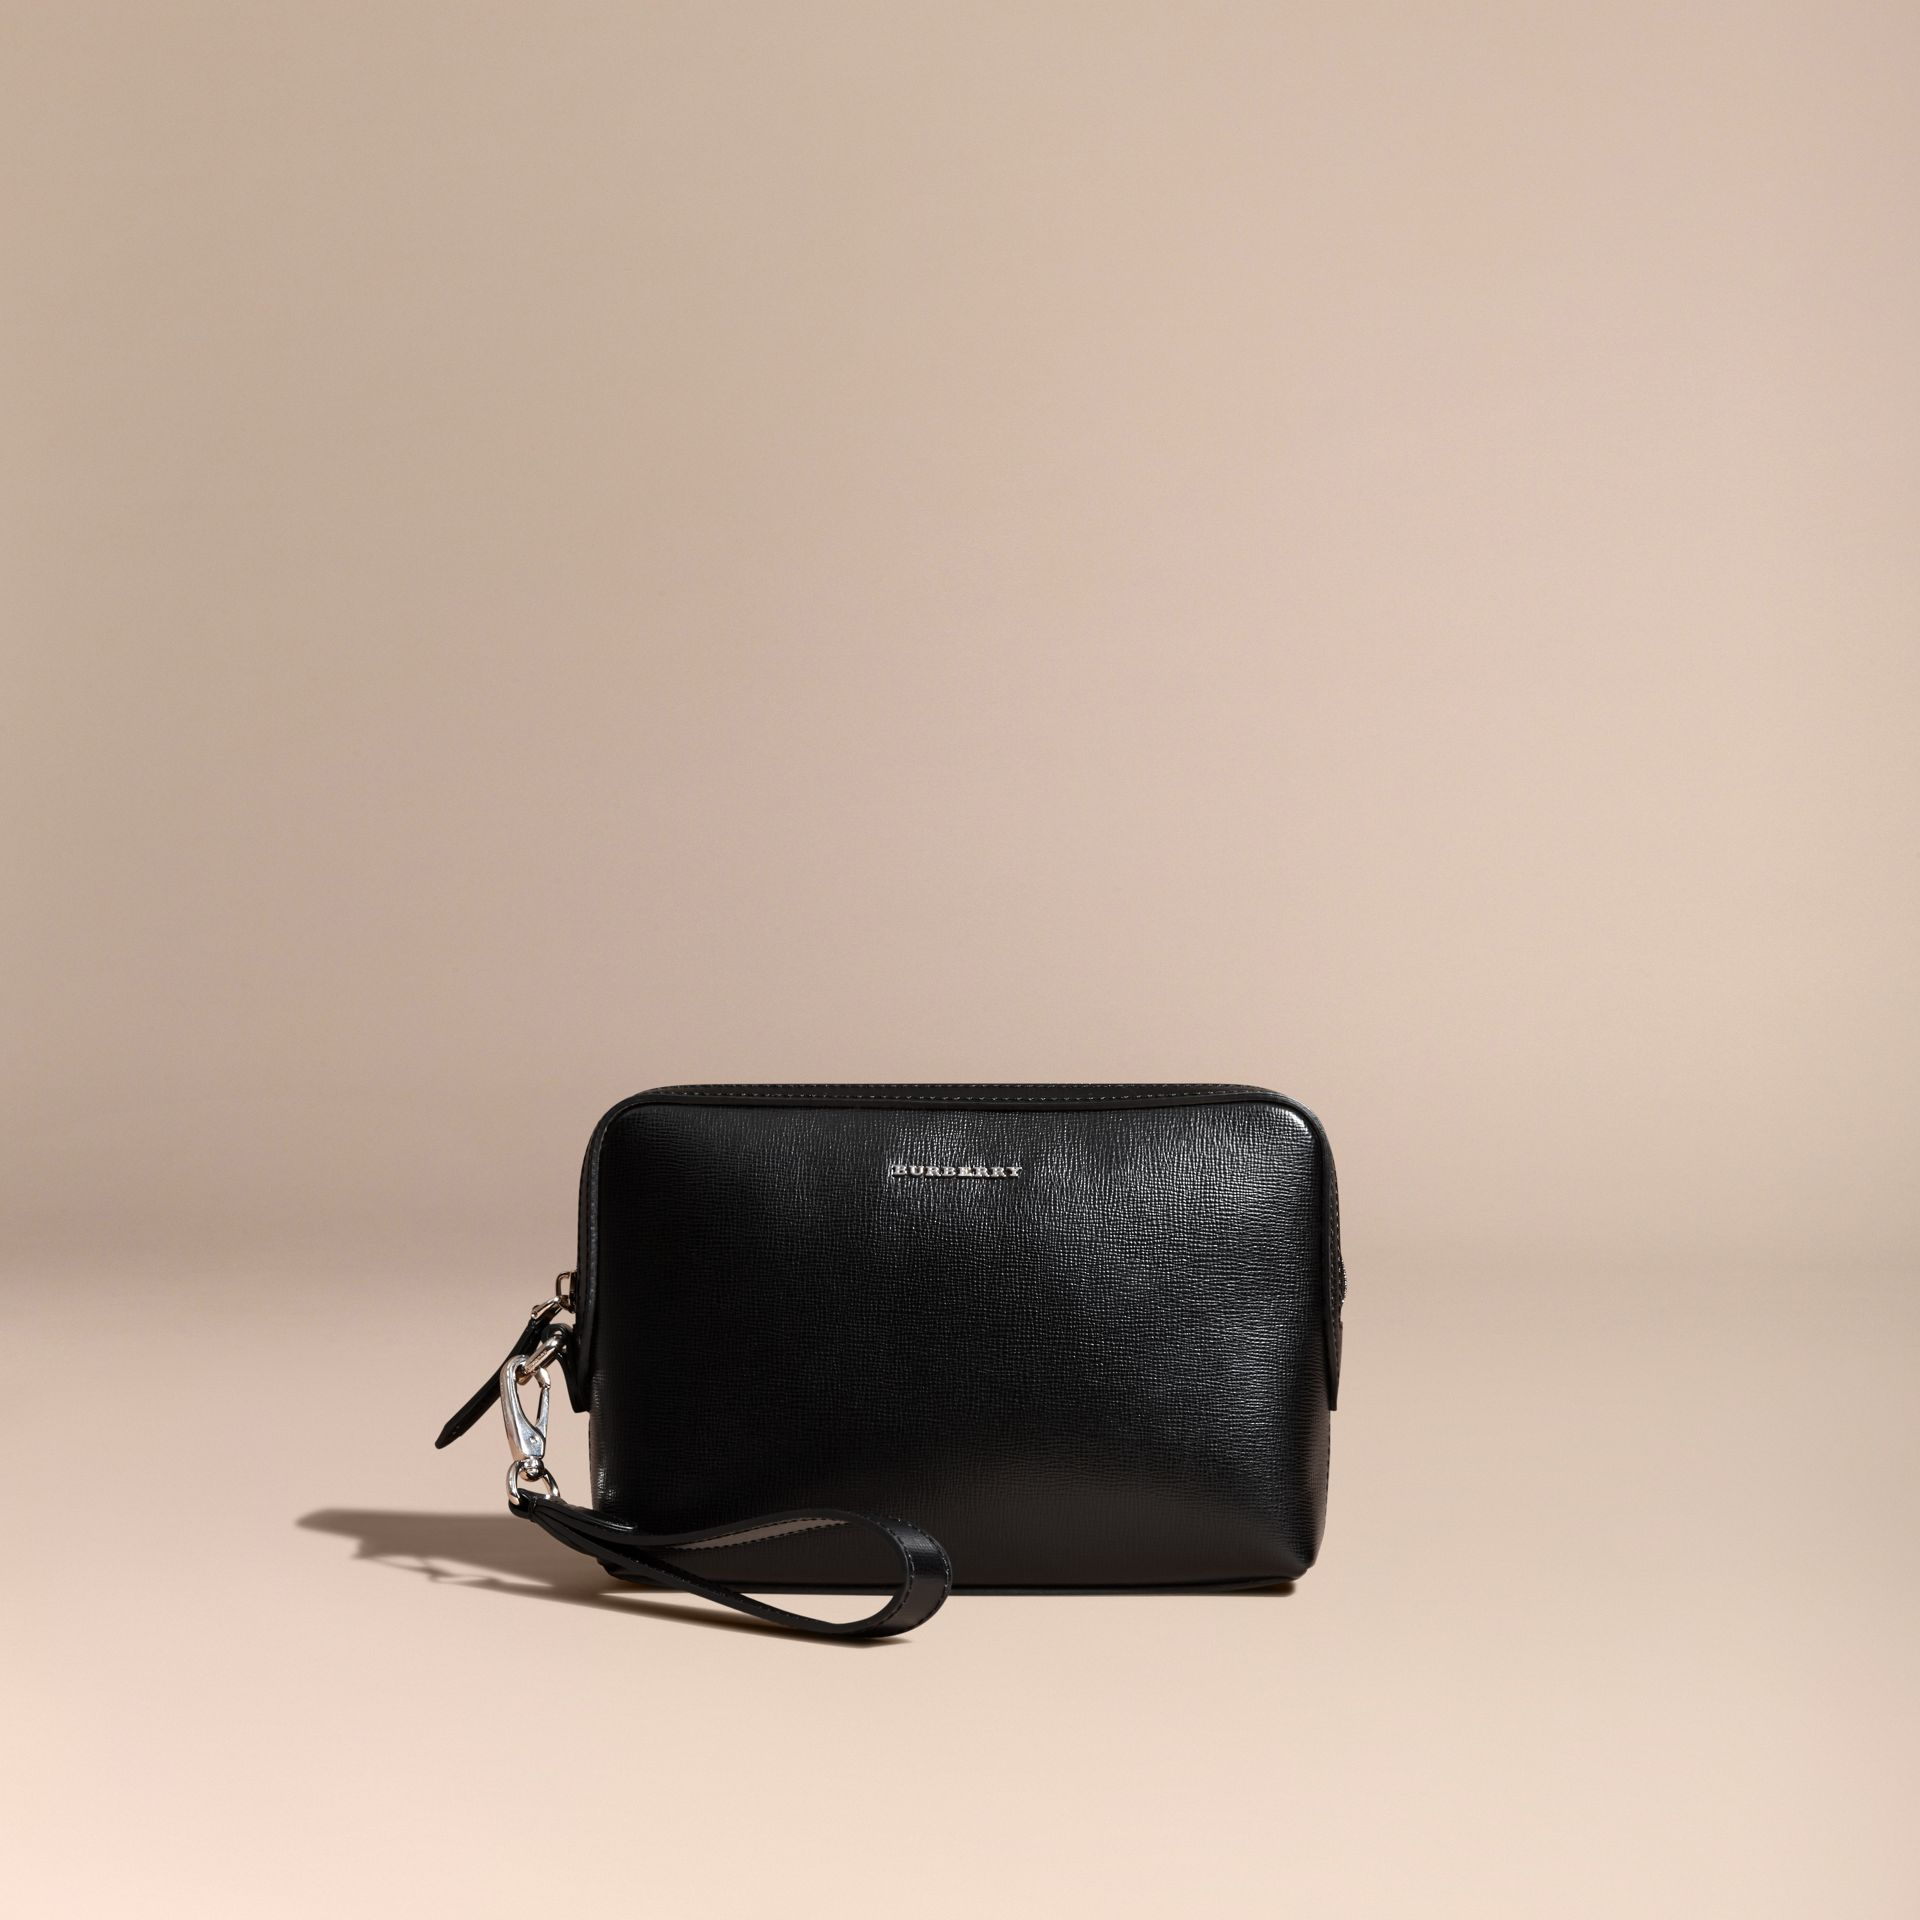 Black London Leather Pouch Black - gallery image 6